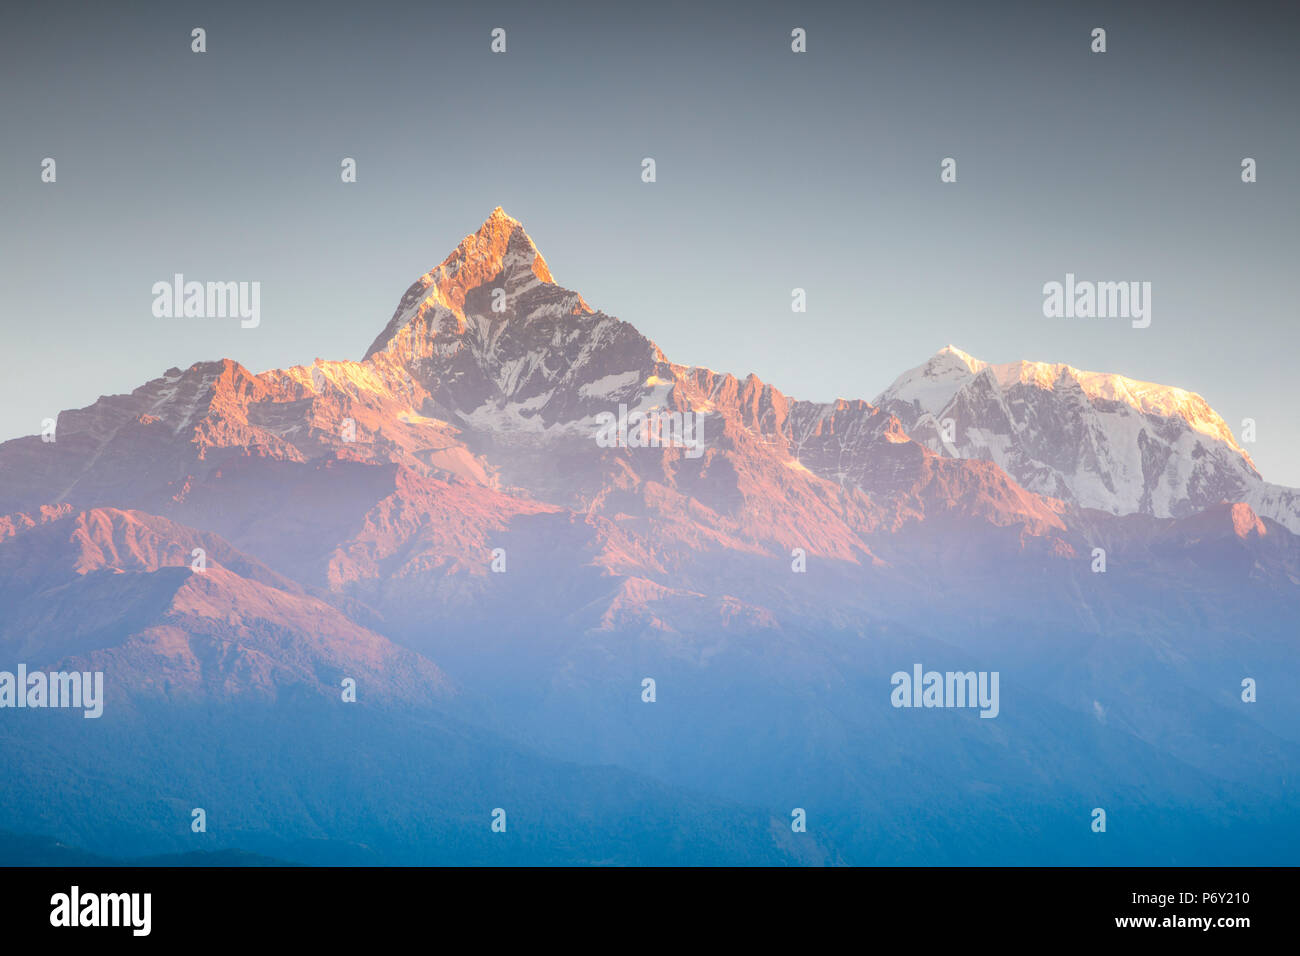 Annapurna mountain range at sunrise, Pokhara, Nepal - Stock Image